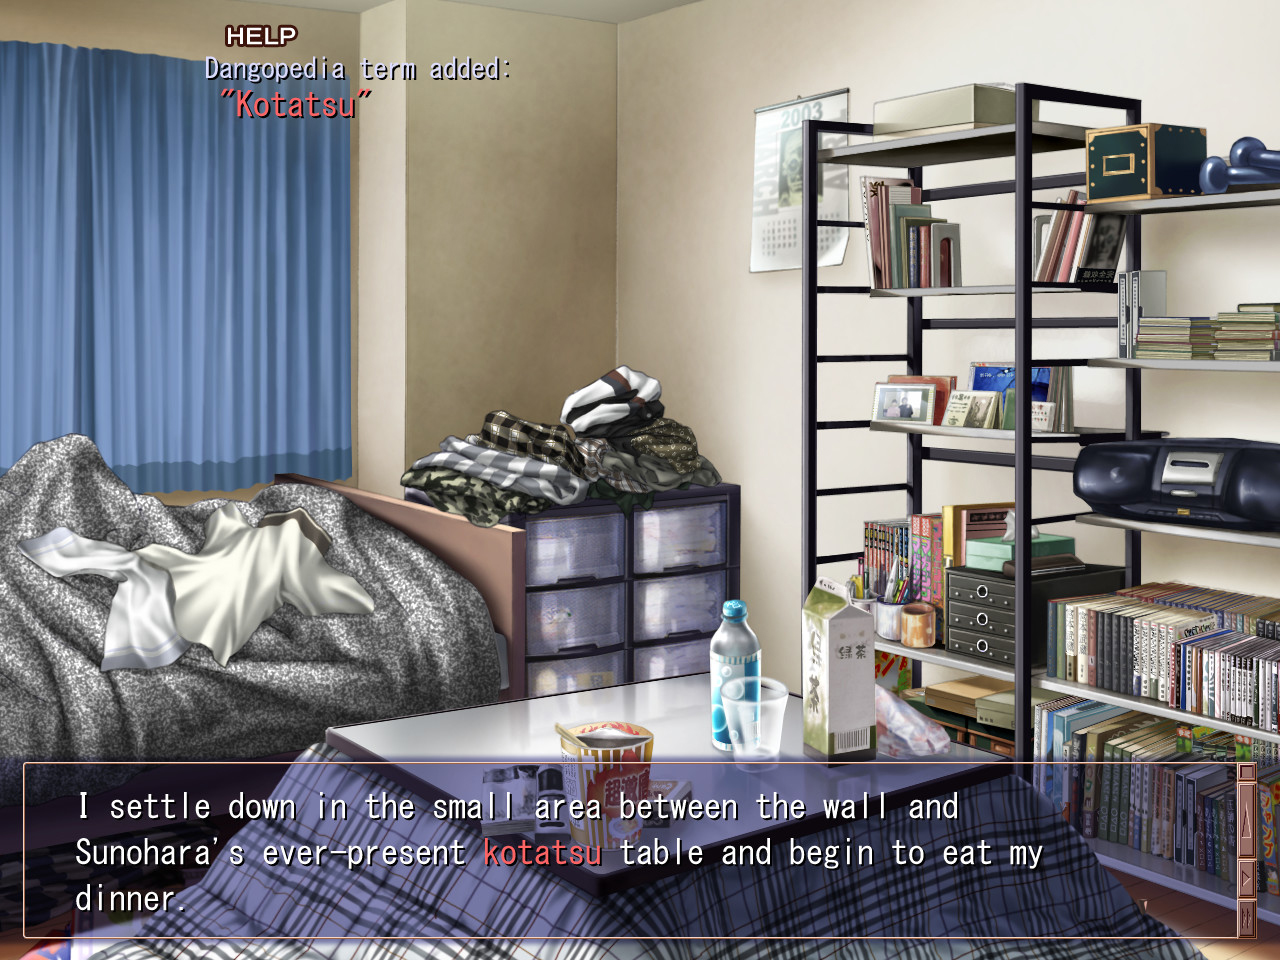 Clannad Steam Screenshots 04